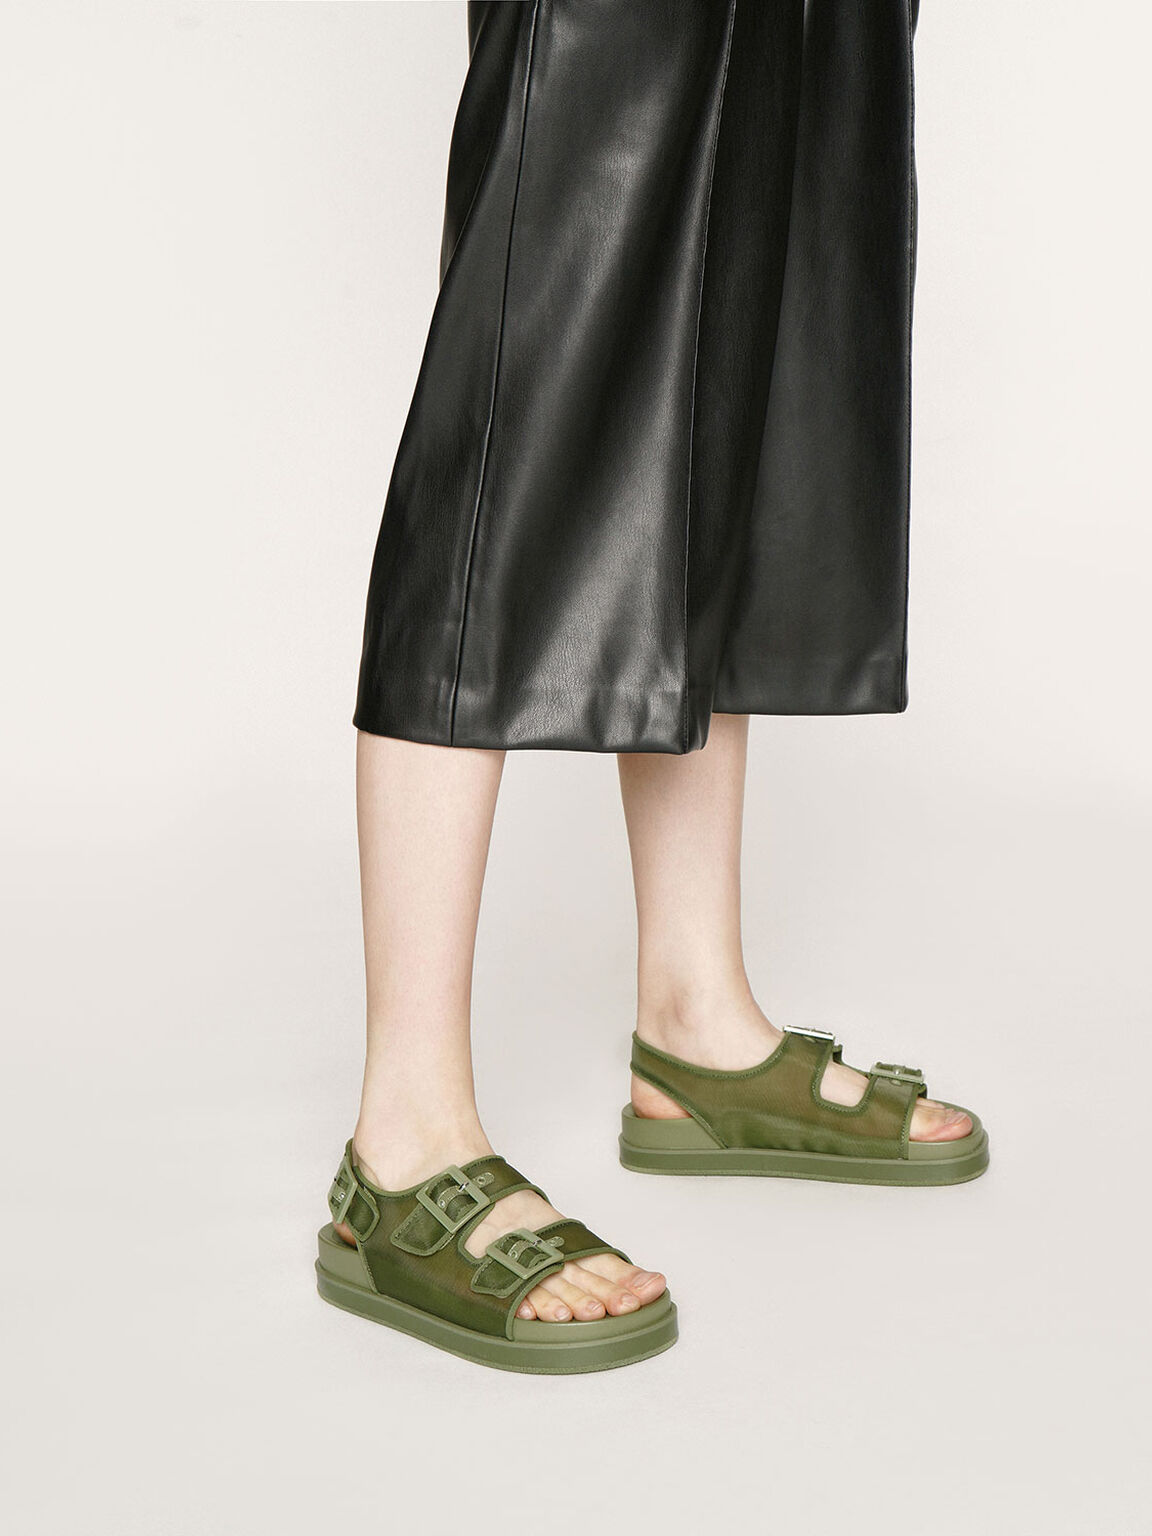 Mesh Flatform Sandals, Military Green, hi-res